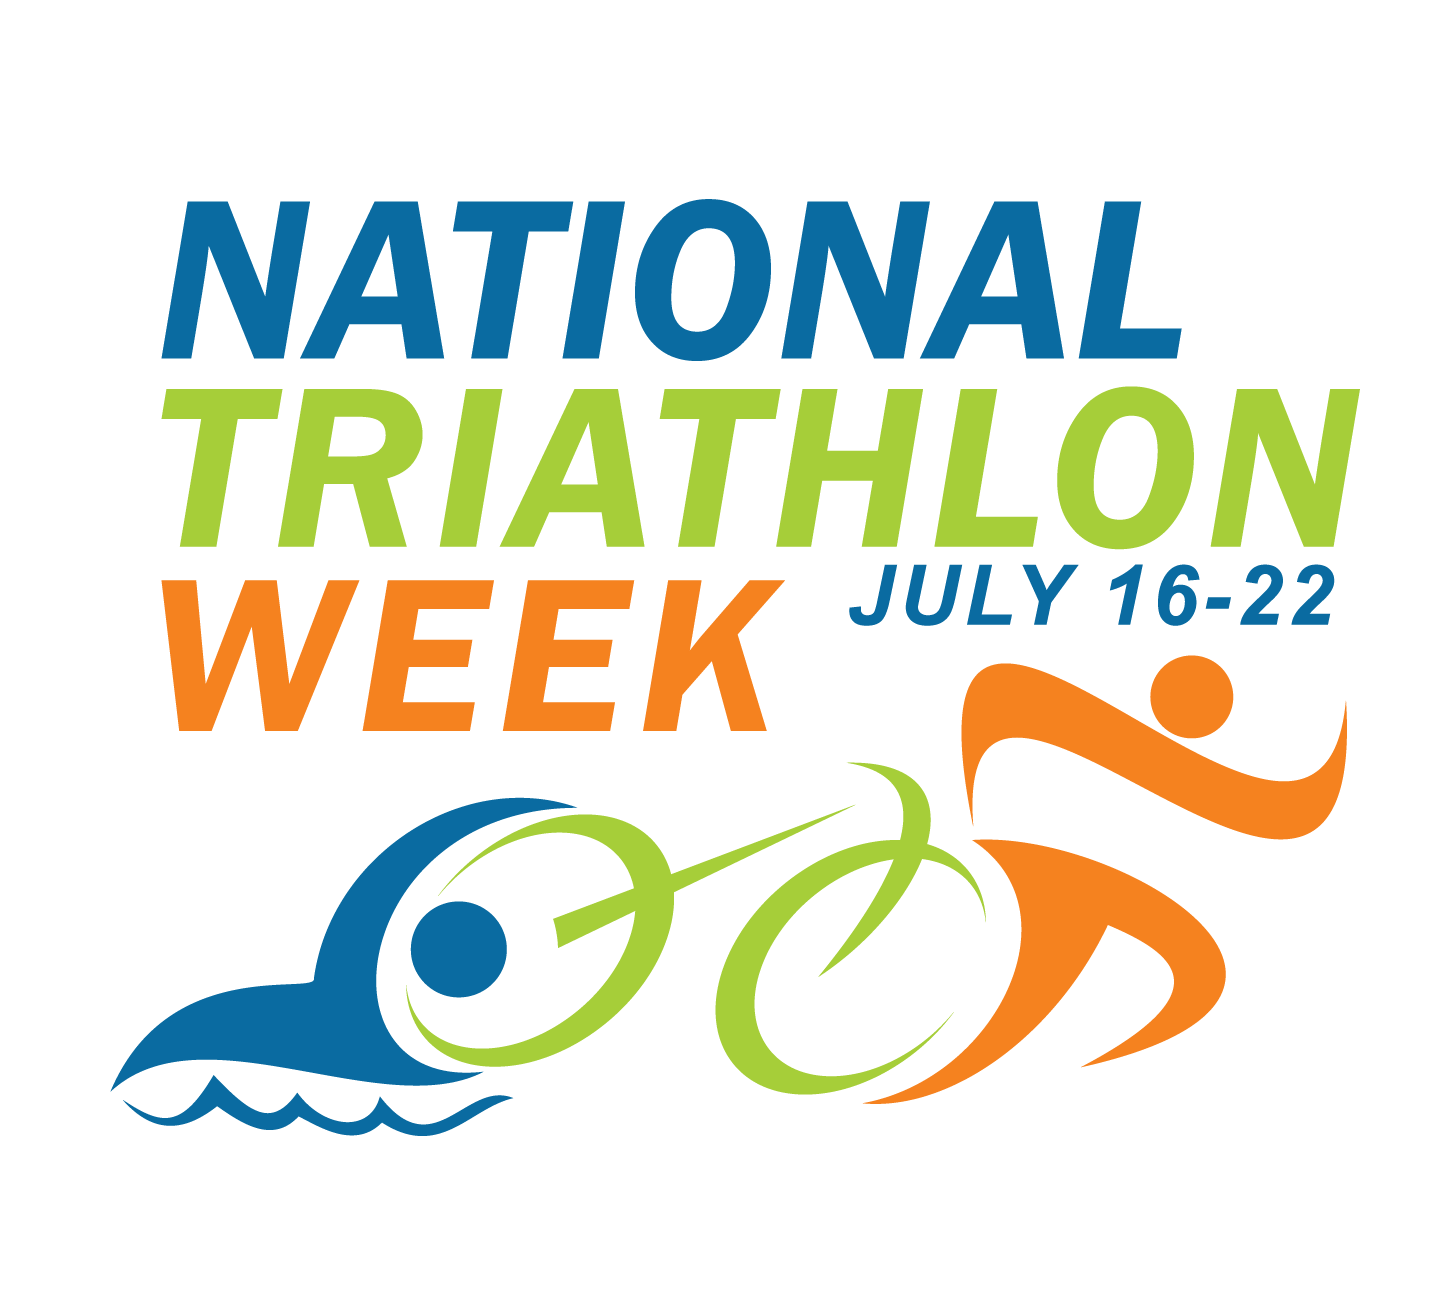 Triathlon Tips for National Triathlon Week